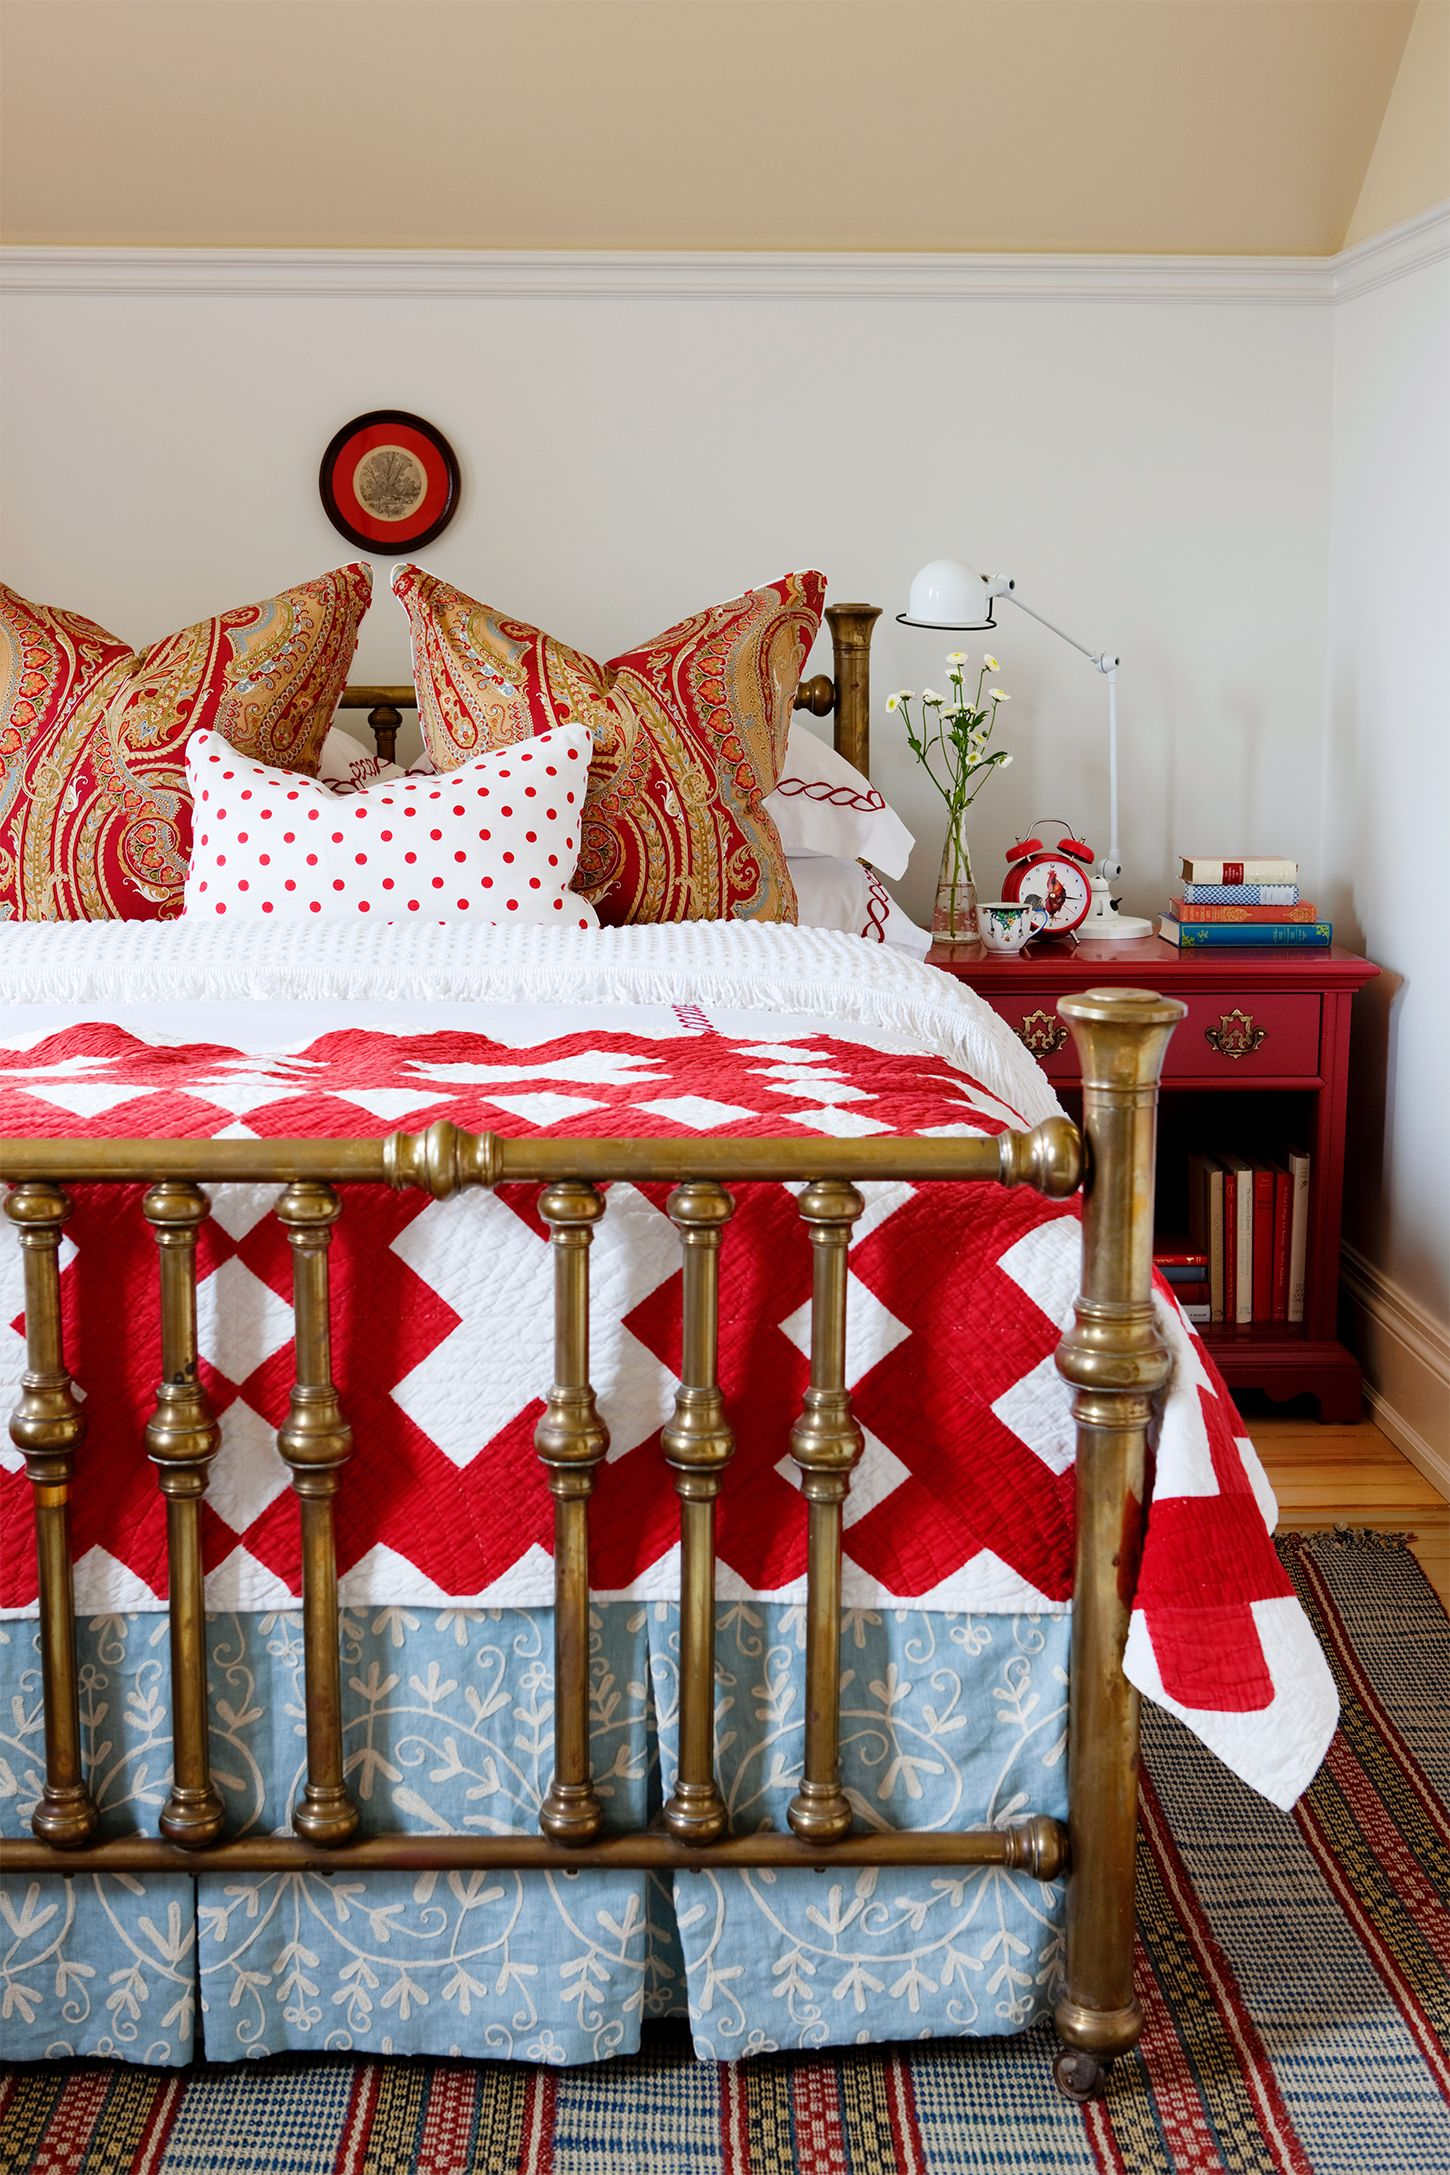 cozy bedroom ideas - red bedding